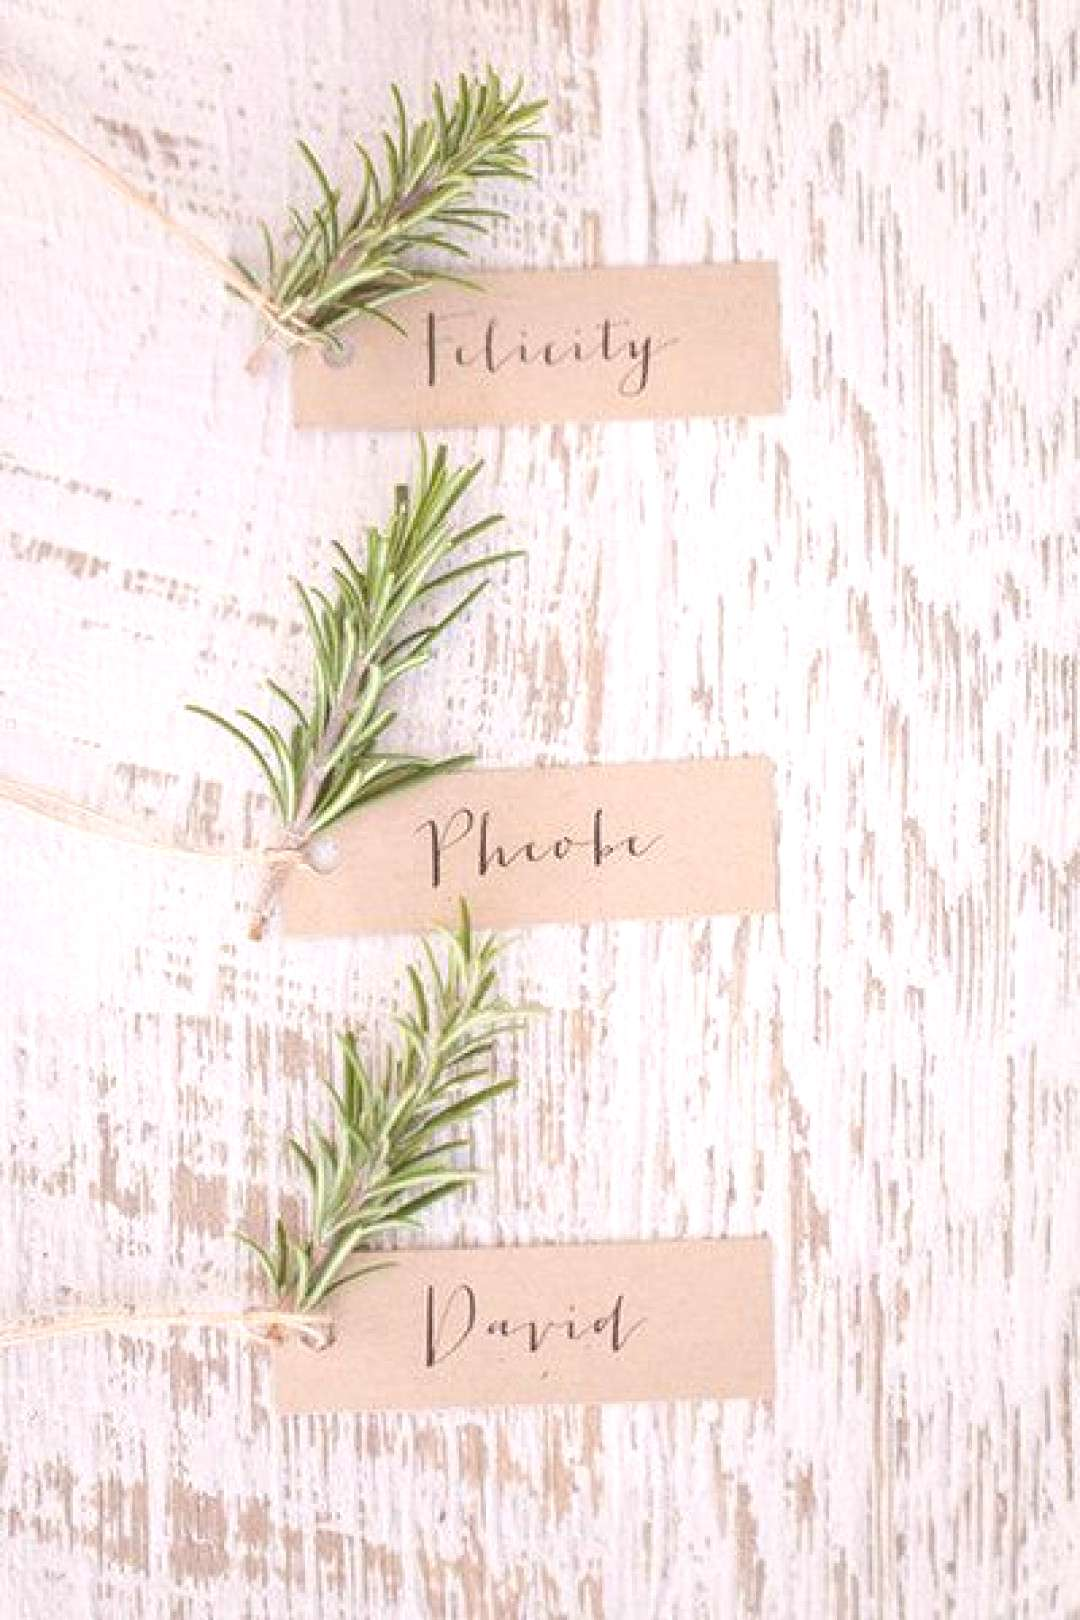 Leaf Place Cards - The Most Popular Holiday Celebration Decor Trends For 2018, According To Pintere